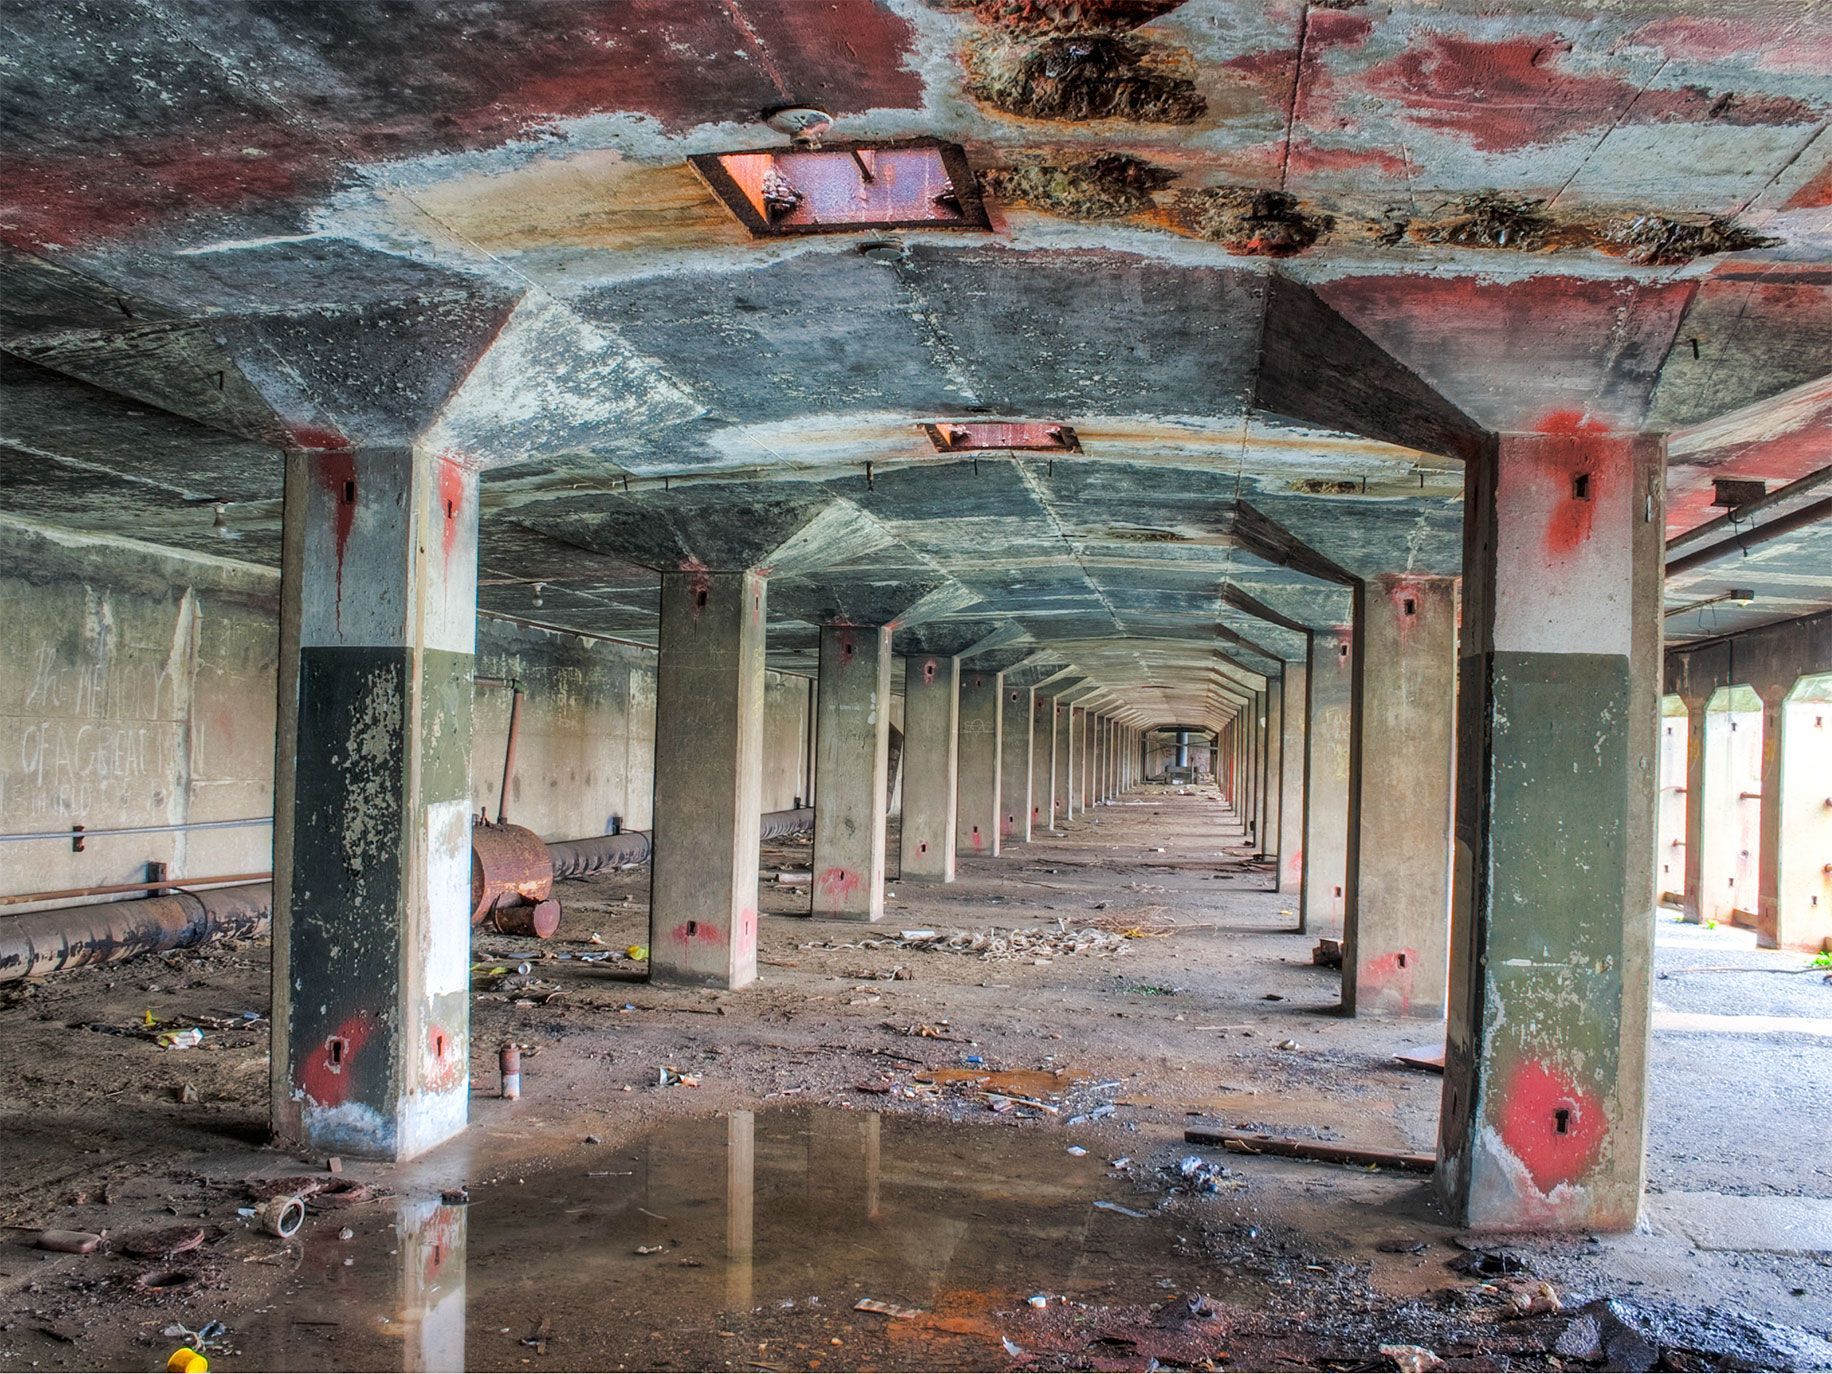 Urban explorers have photographed the subterranean dry docks at the Richmond shipyard, the world's center for shipbuilding during World War II. Hundreds of ships were built there, and it's now designated as Rosie the Riveter National Historic Park.